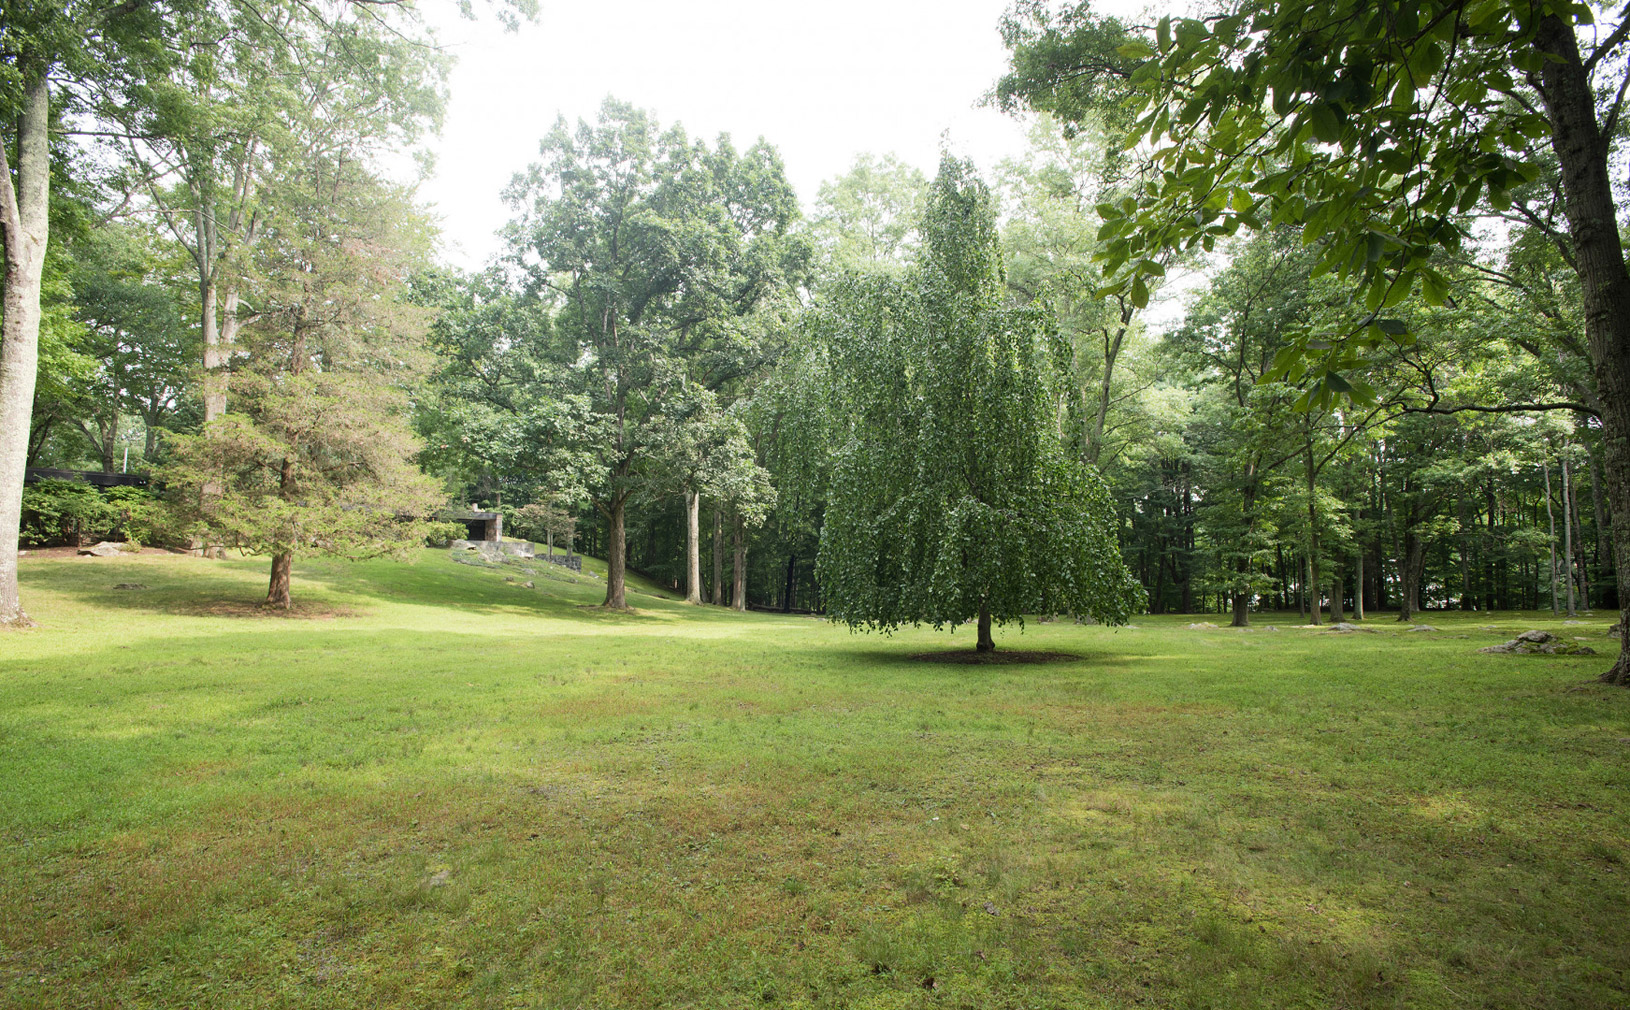 Graphic designer Paul Rand's Connecticut home is for sale